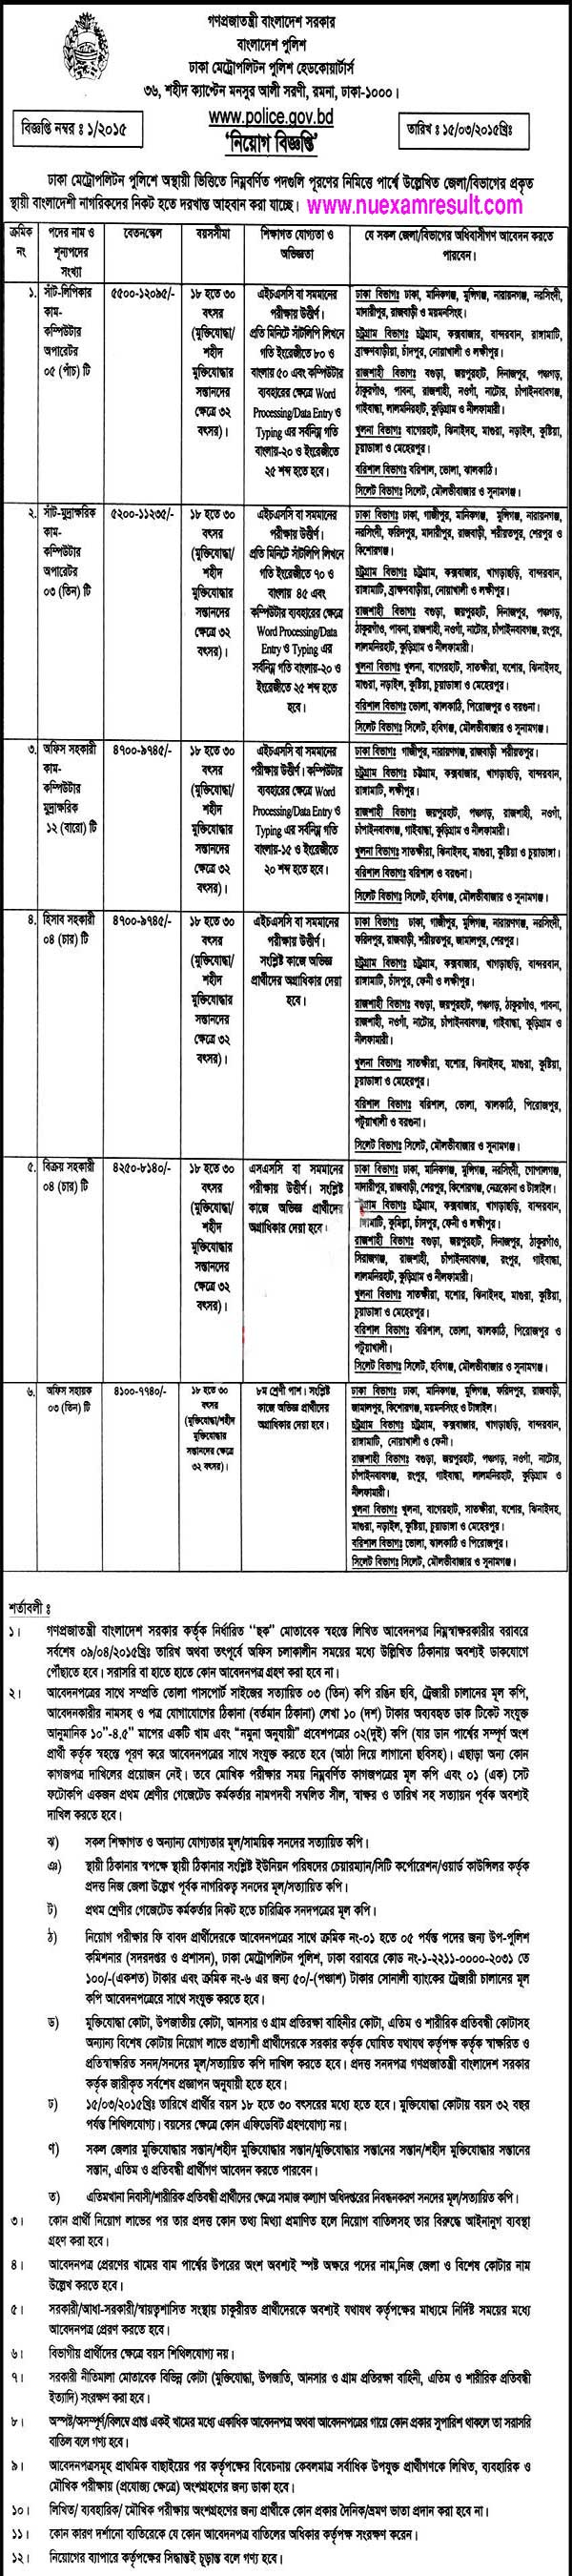 Bangladesh Police Recruitment Circular 2015